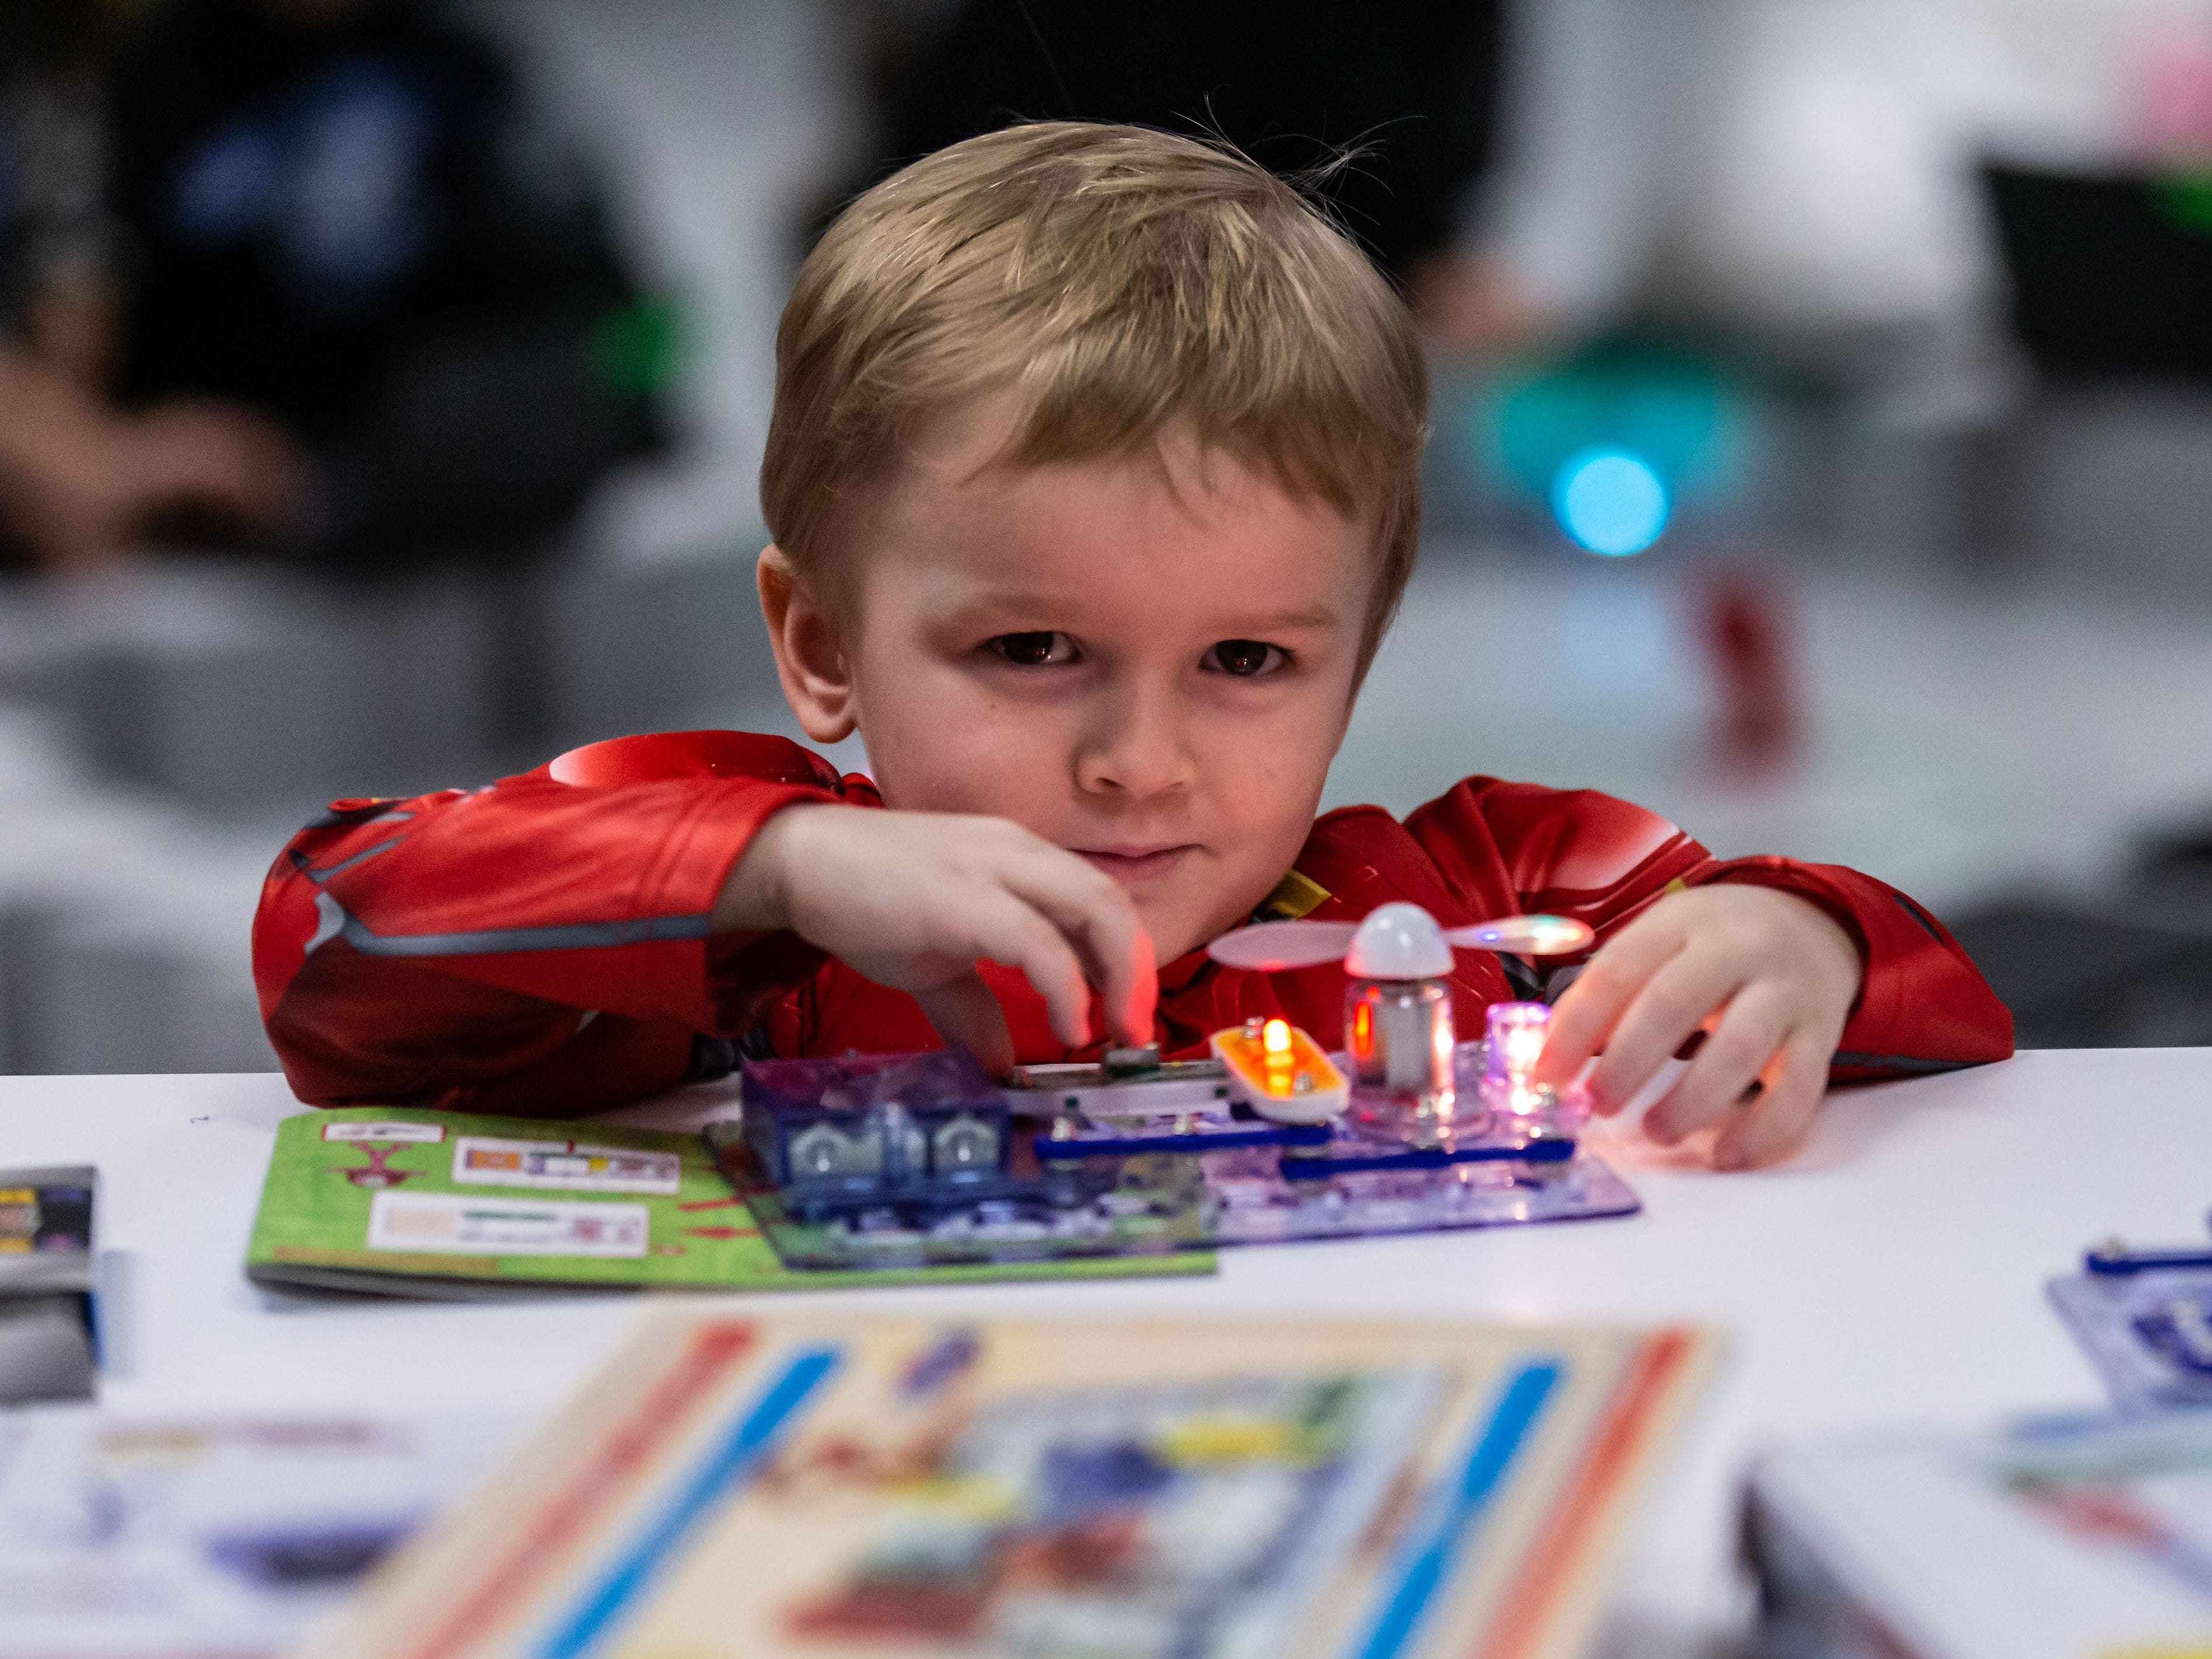 Two-year-old Donovan Holahan of Pewaukee tinkers with an electronics project during the open house event for the new Innovation Lab technology/engineering space at Lake Country School in Hartland on Monday, Feb. 11, 2019.